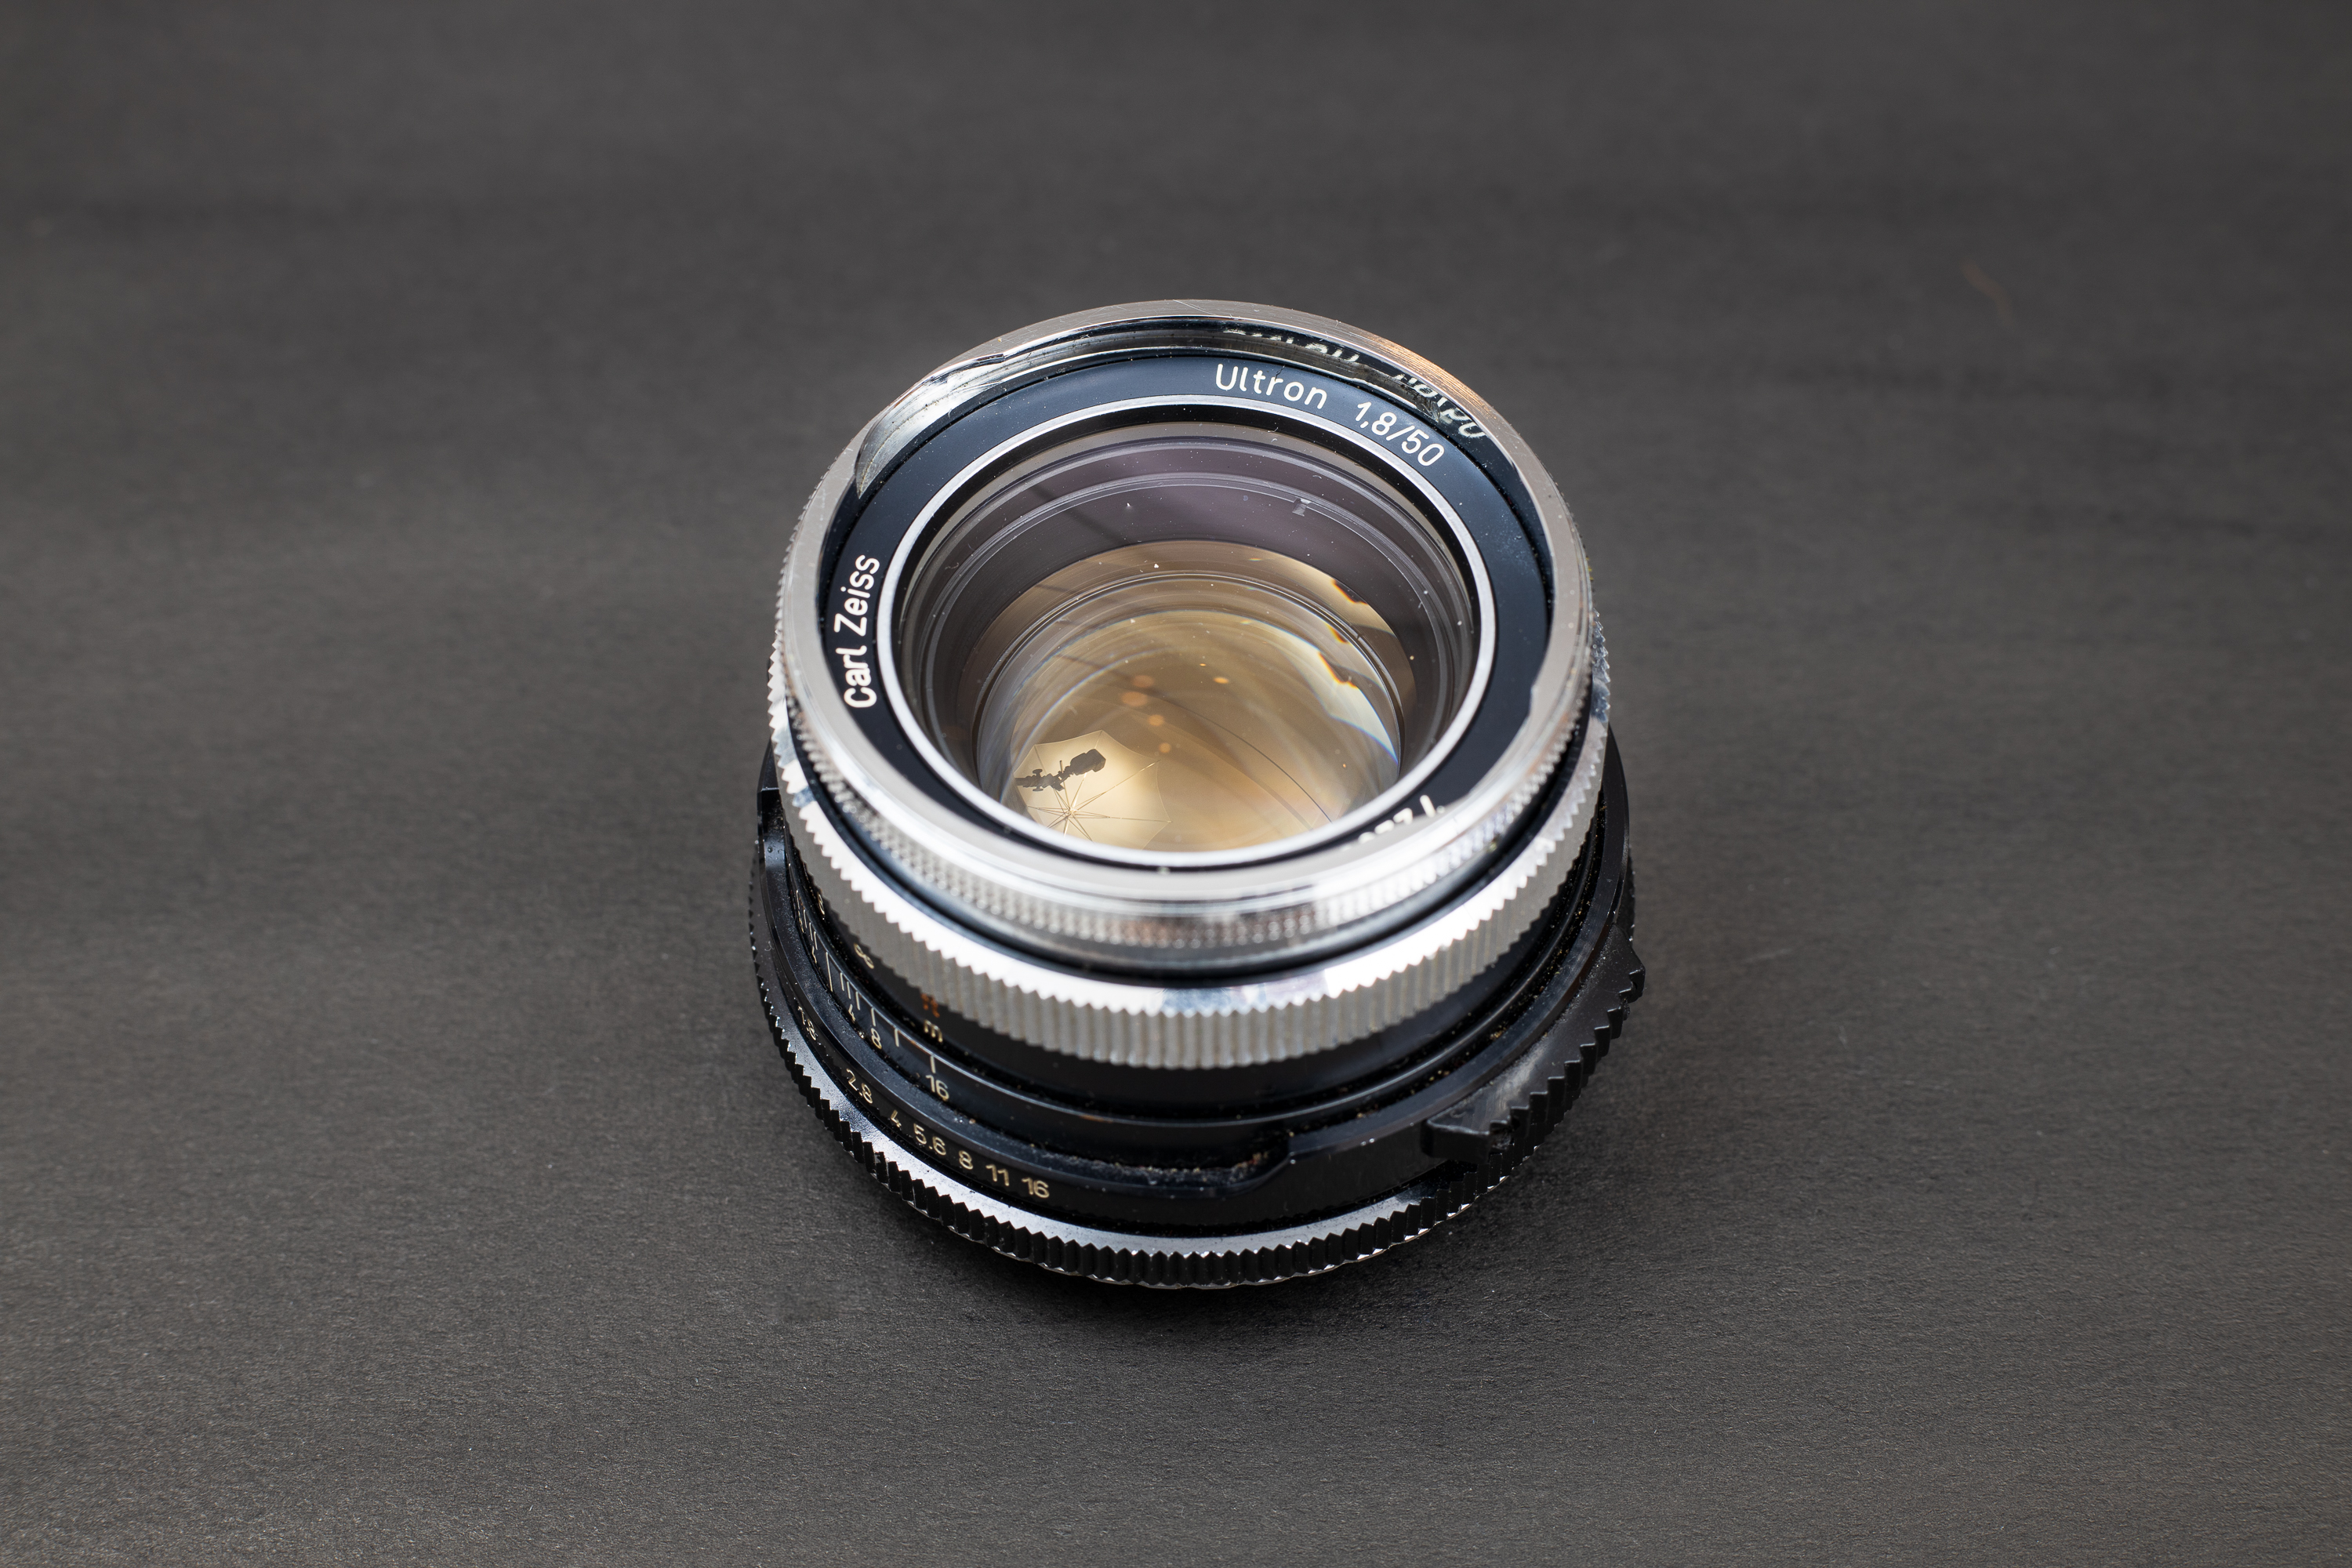 Carl Zeiss 50mm f1.8